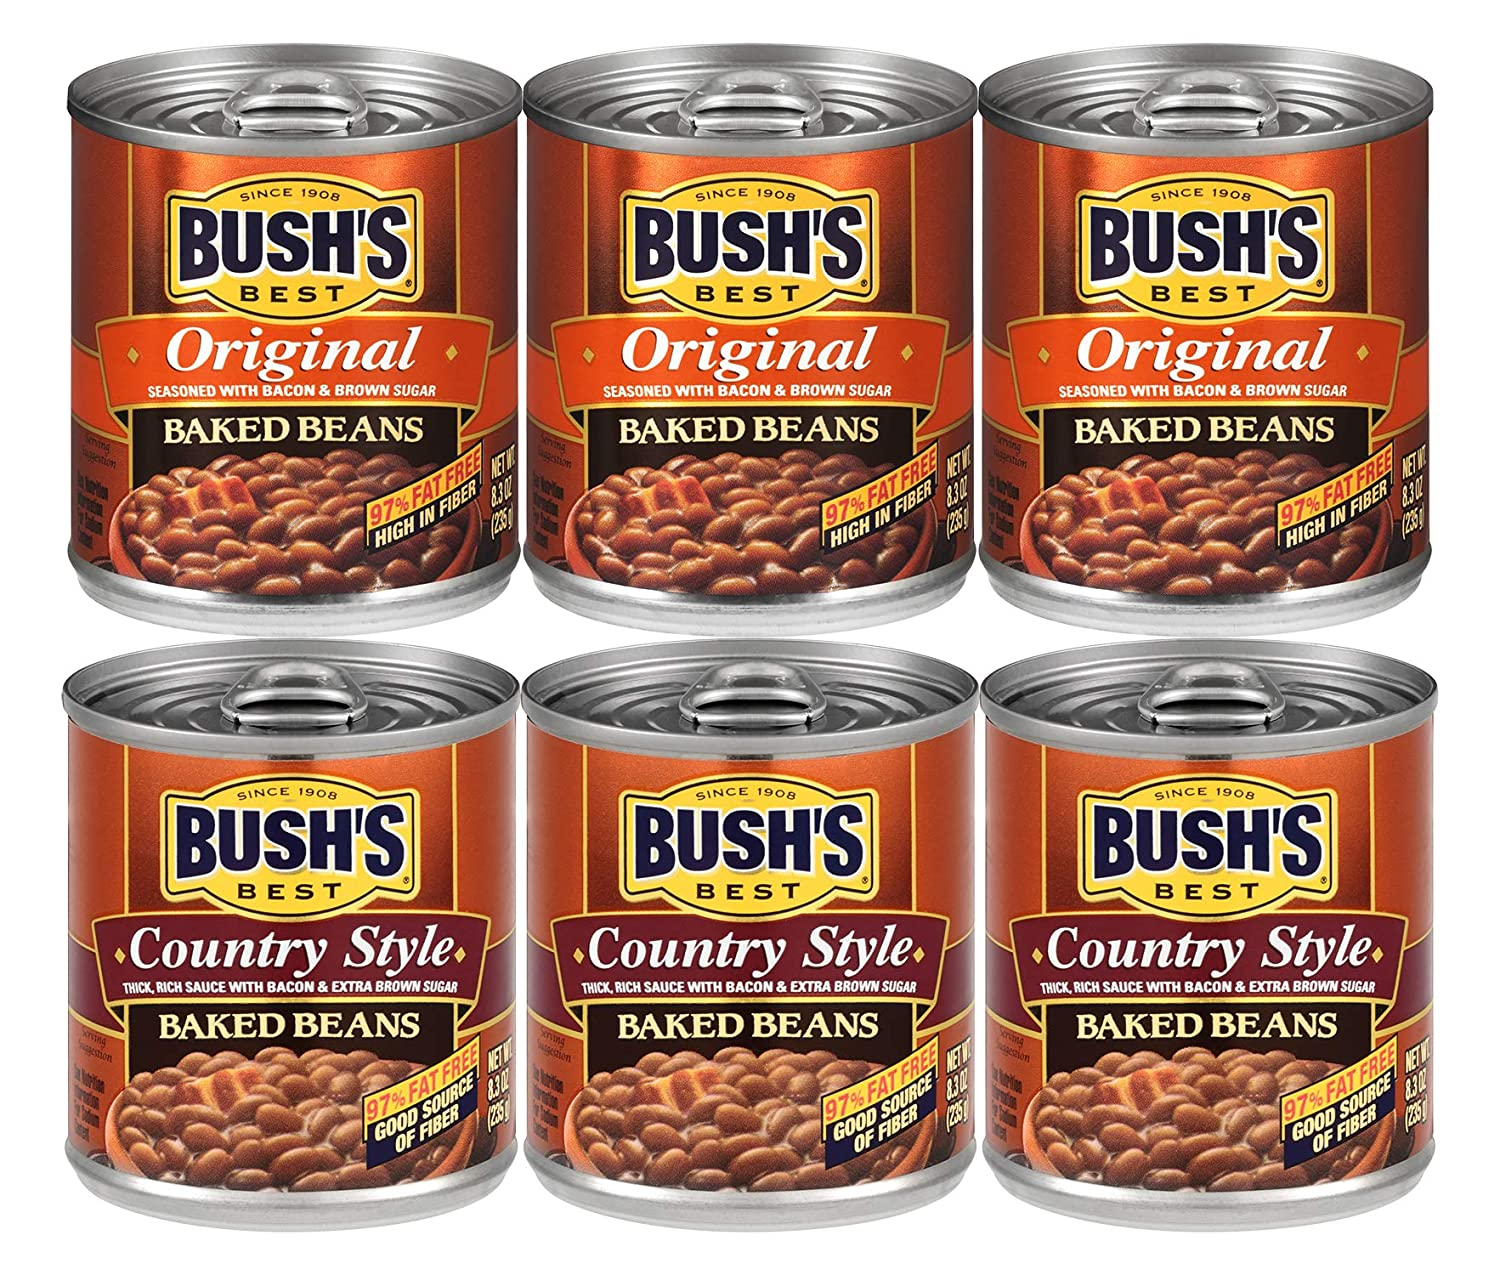 Bush's Best Baked Beans Variety Pack, 3 Original Baked Beans, 3 Country Style, 1 CT